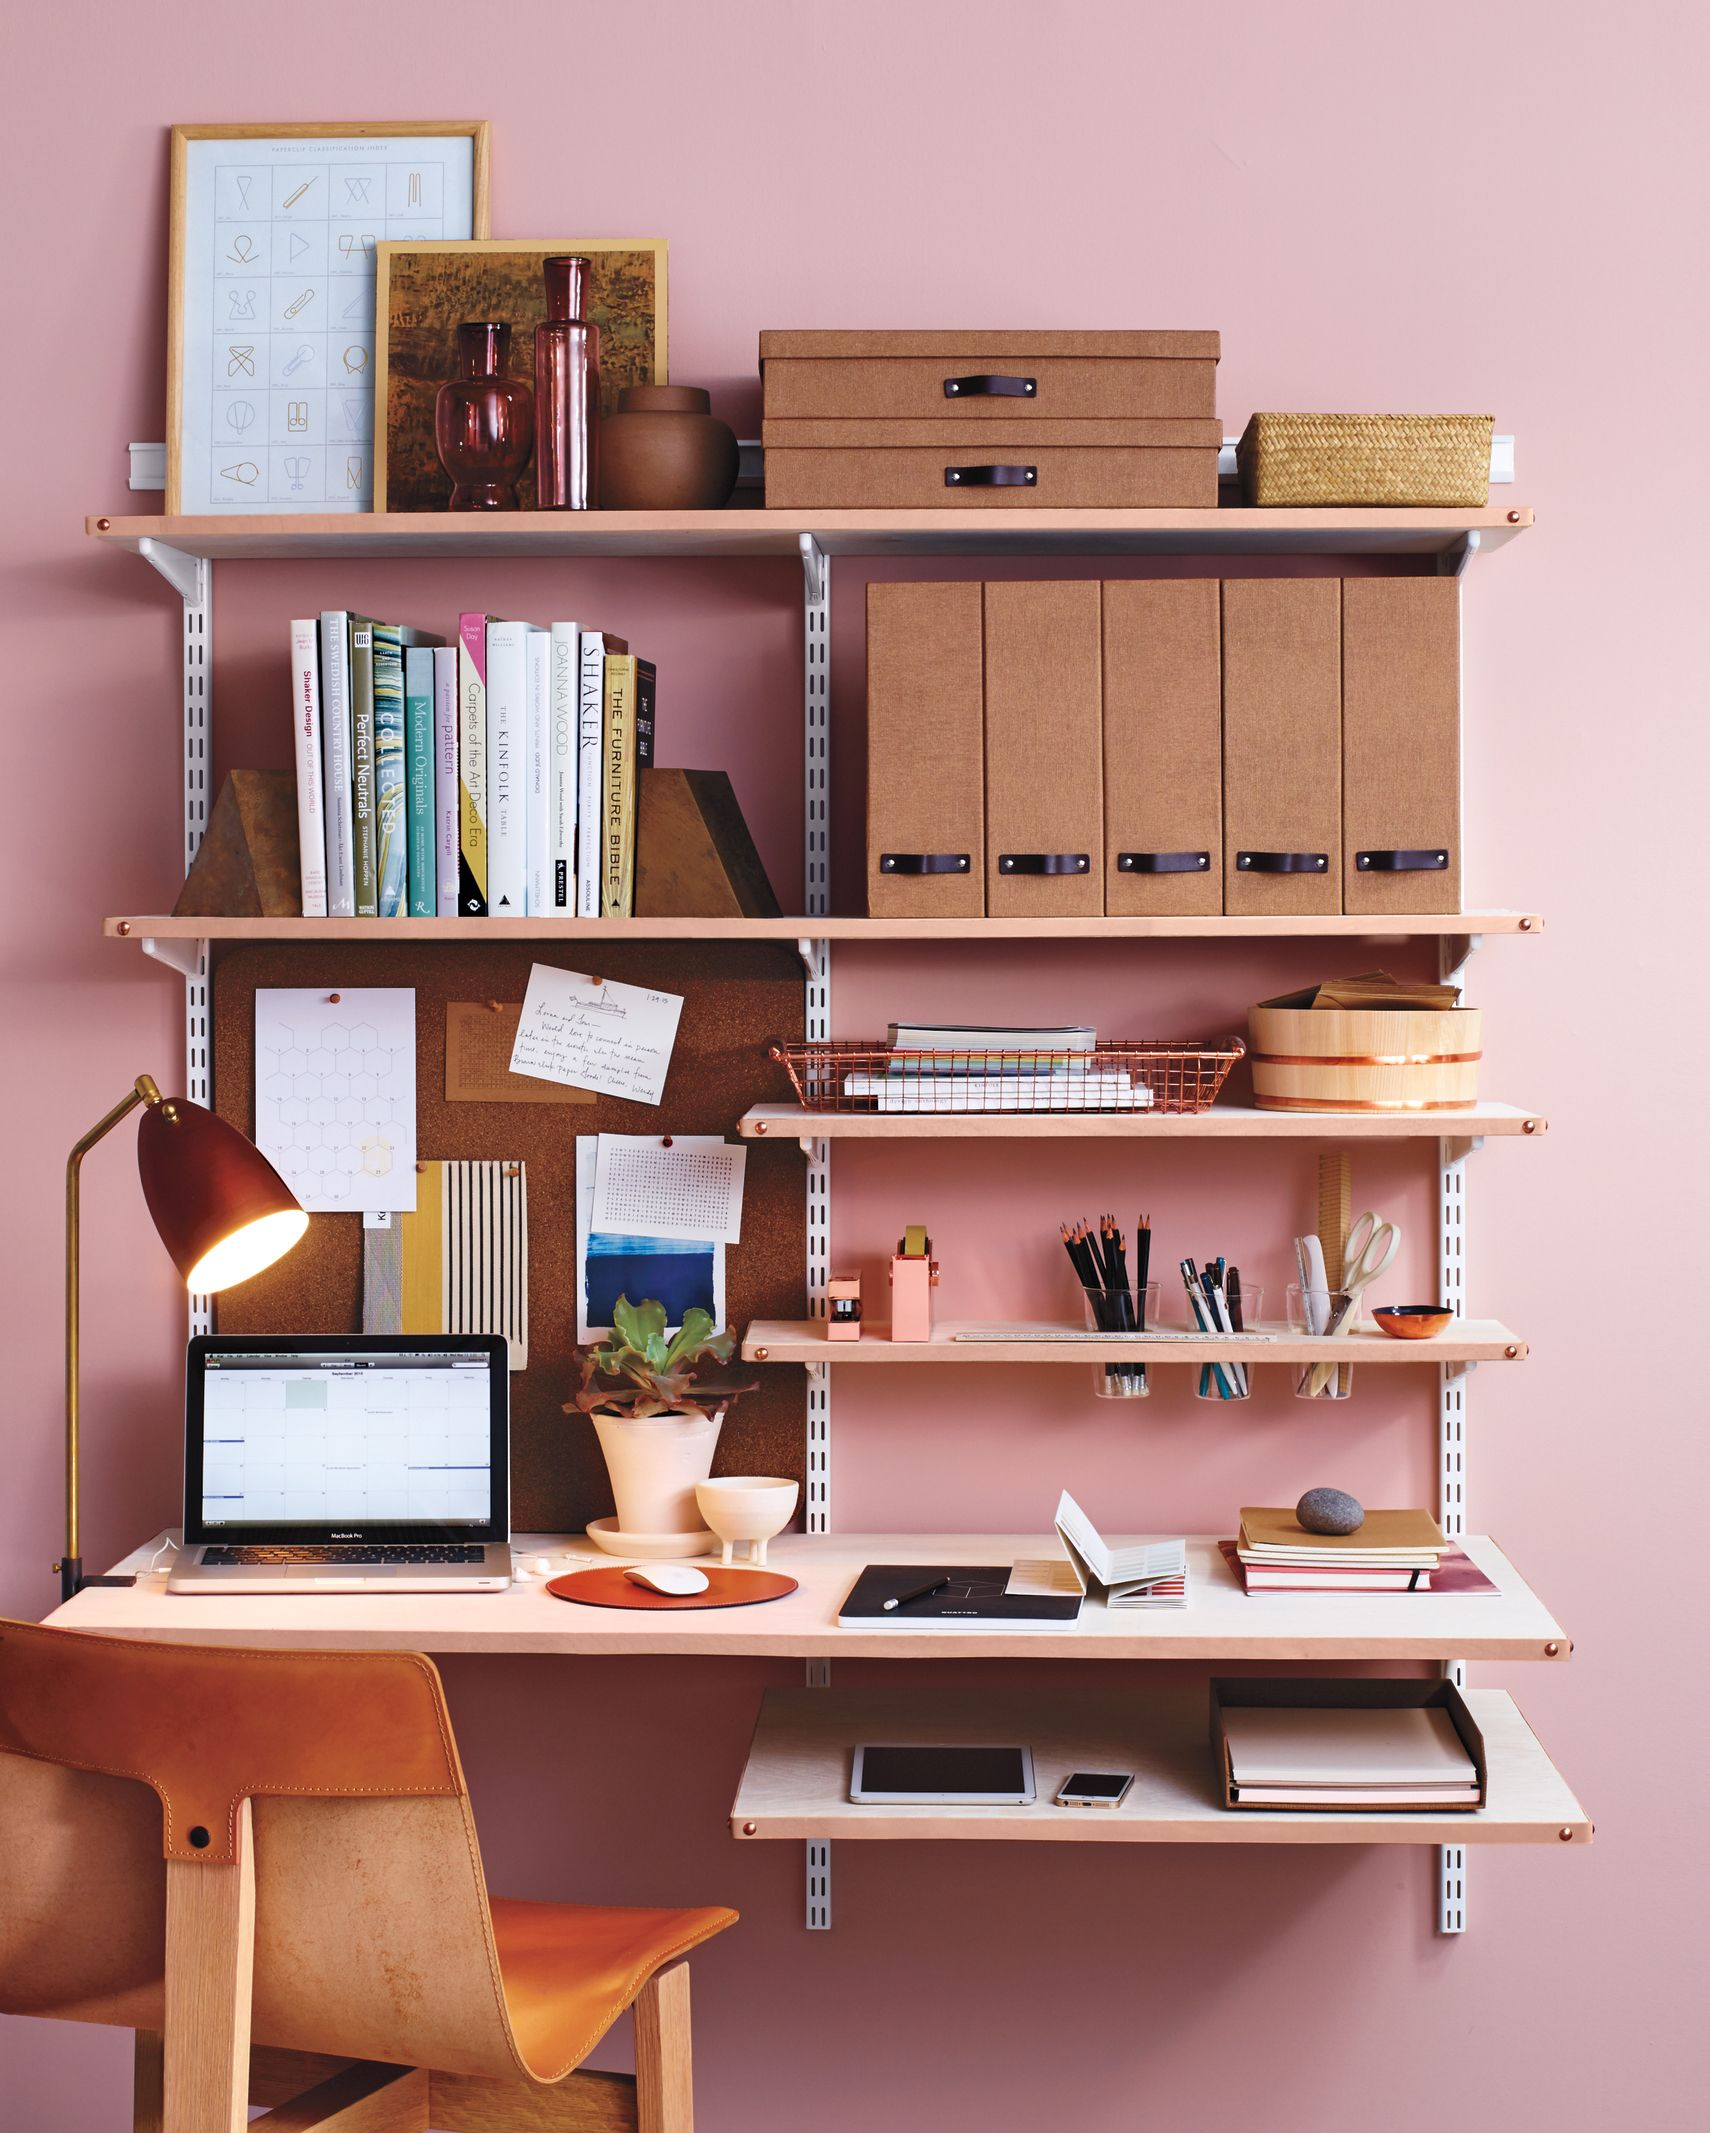 10 Diy Desks That You Can Build For Any Home Office Diy Desk Home Home Office Design